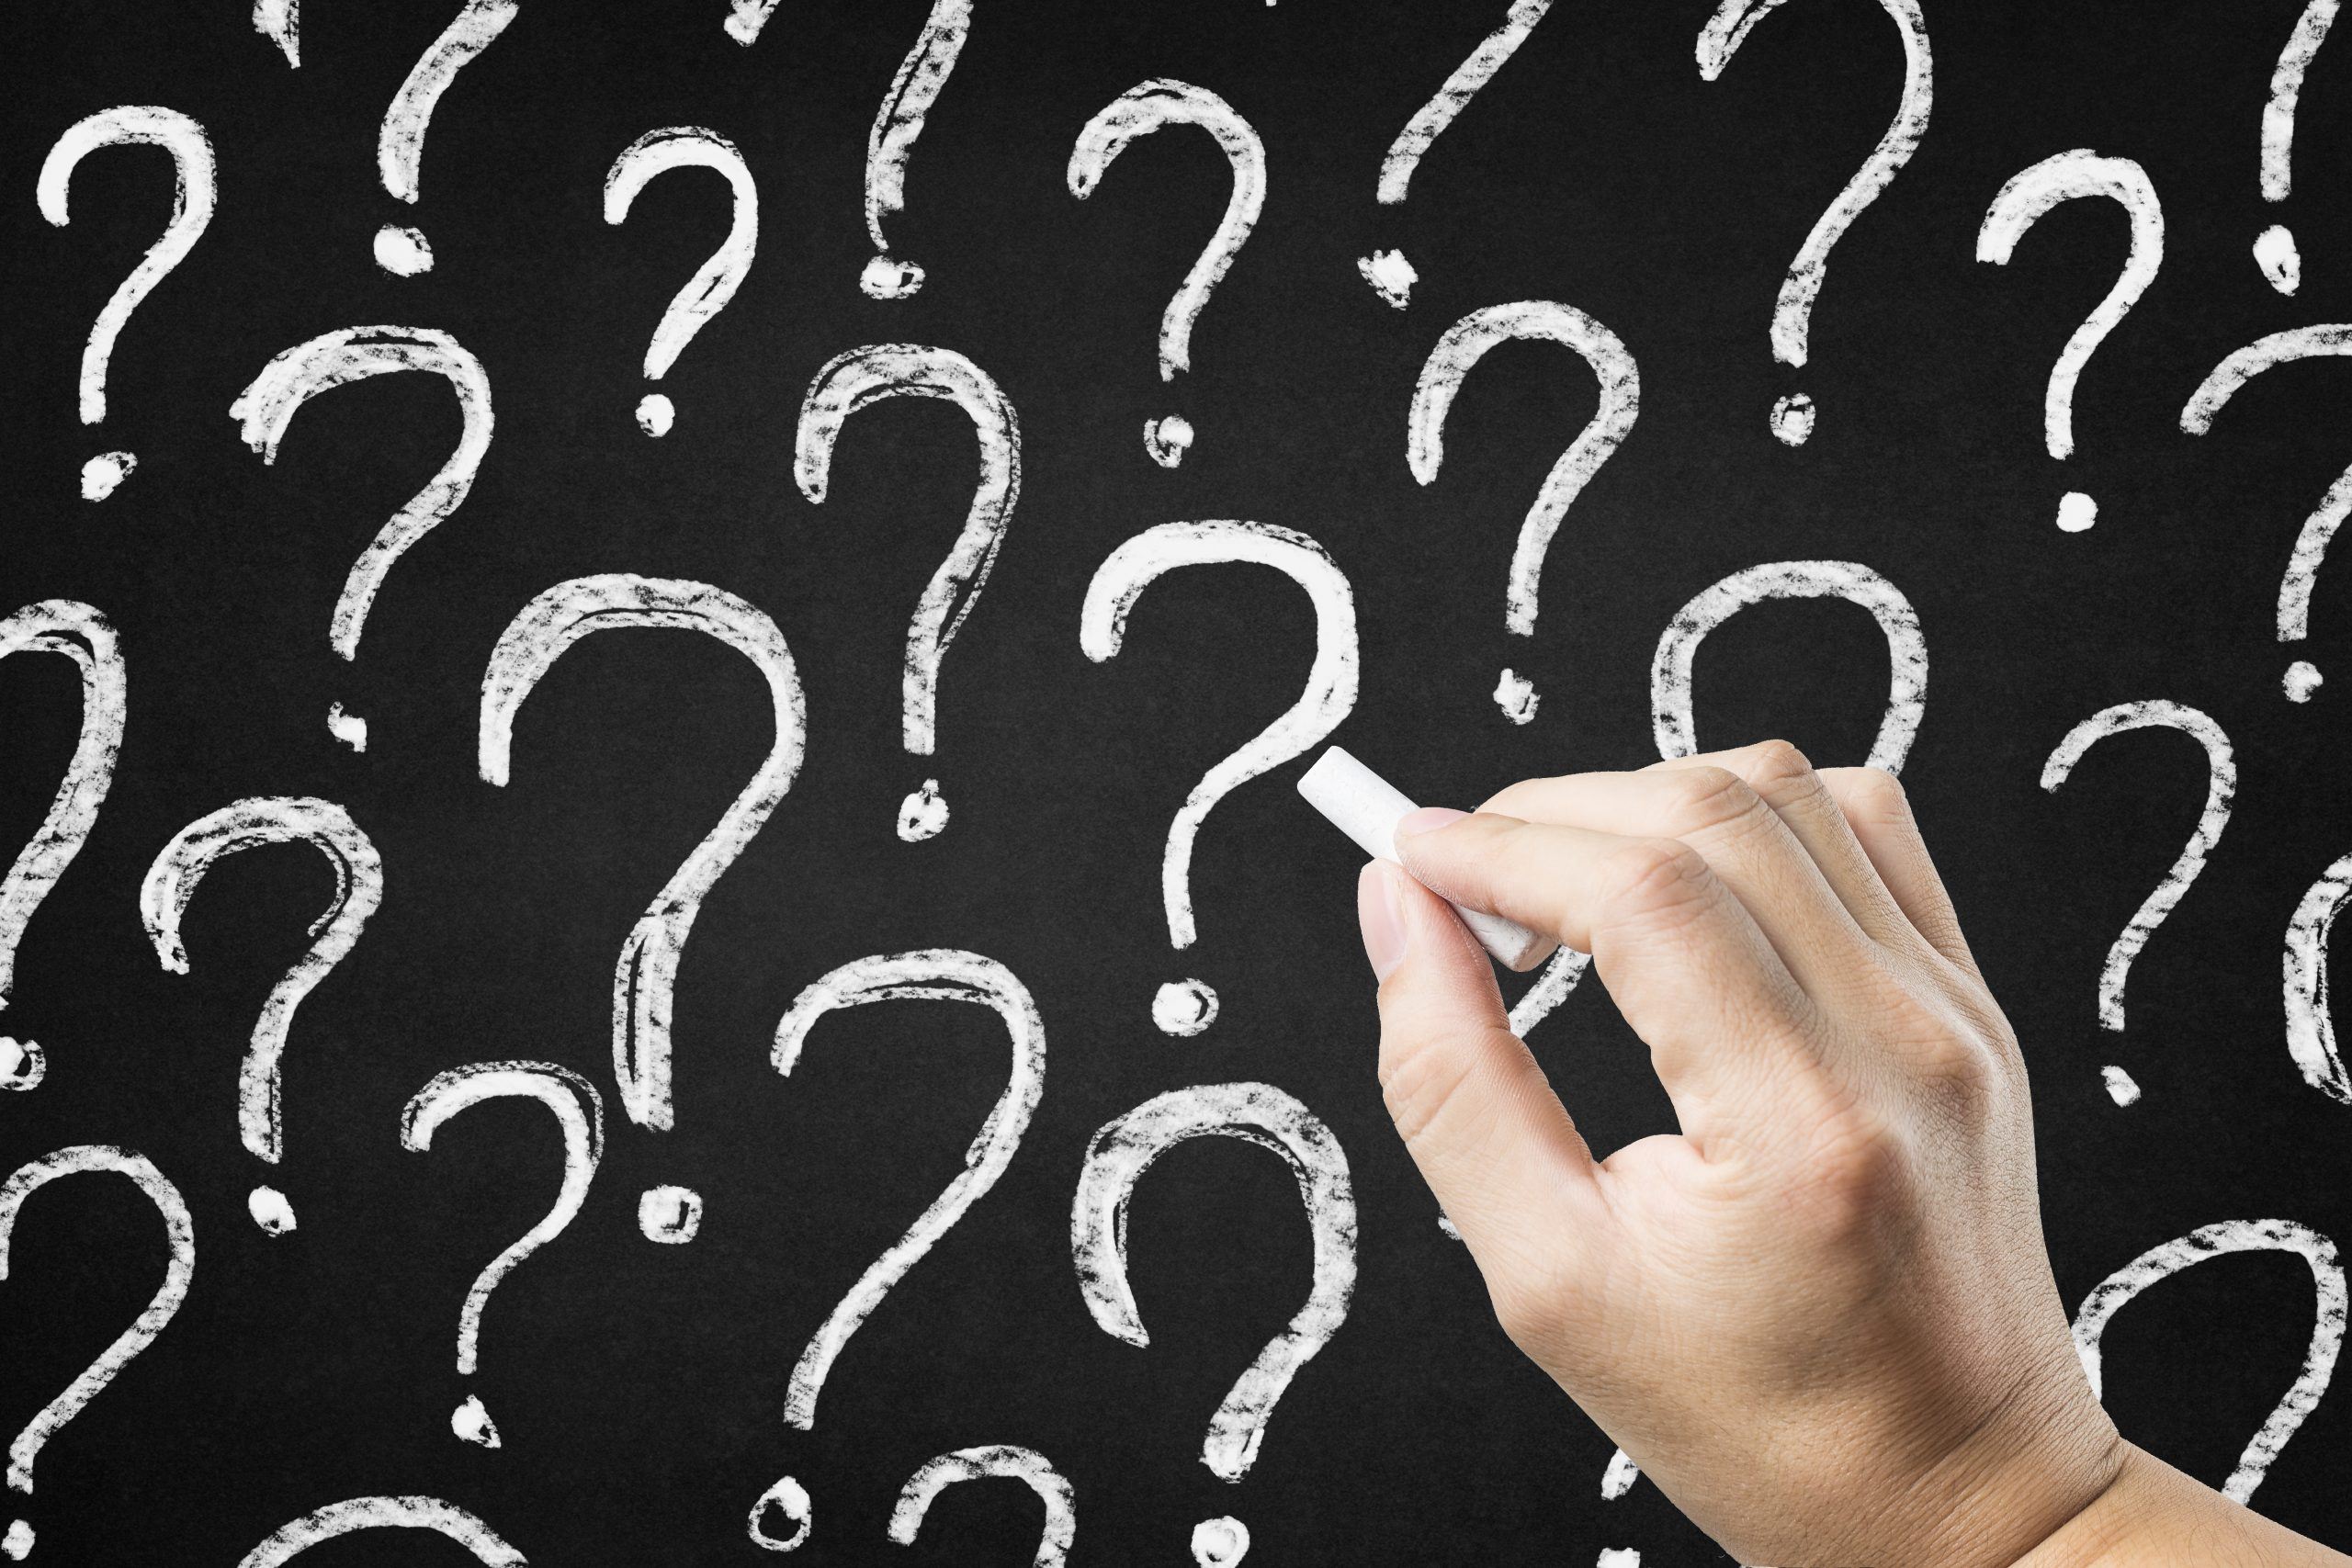 ESR Frequently Asked Questions